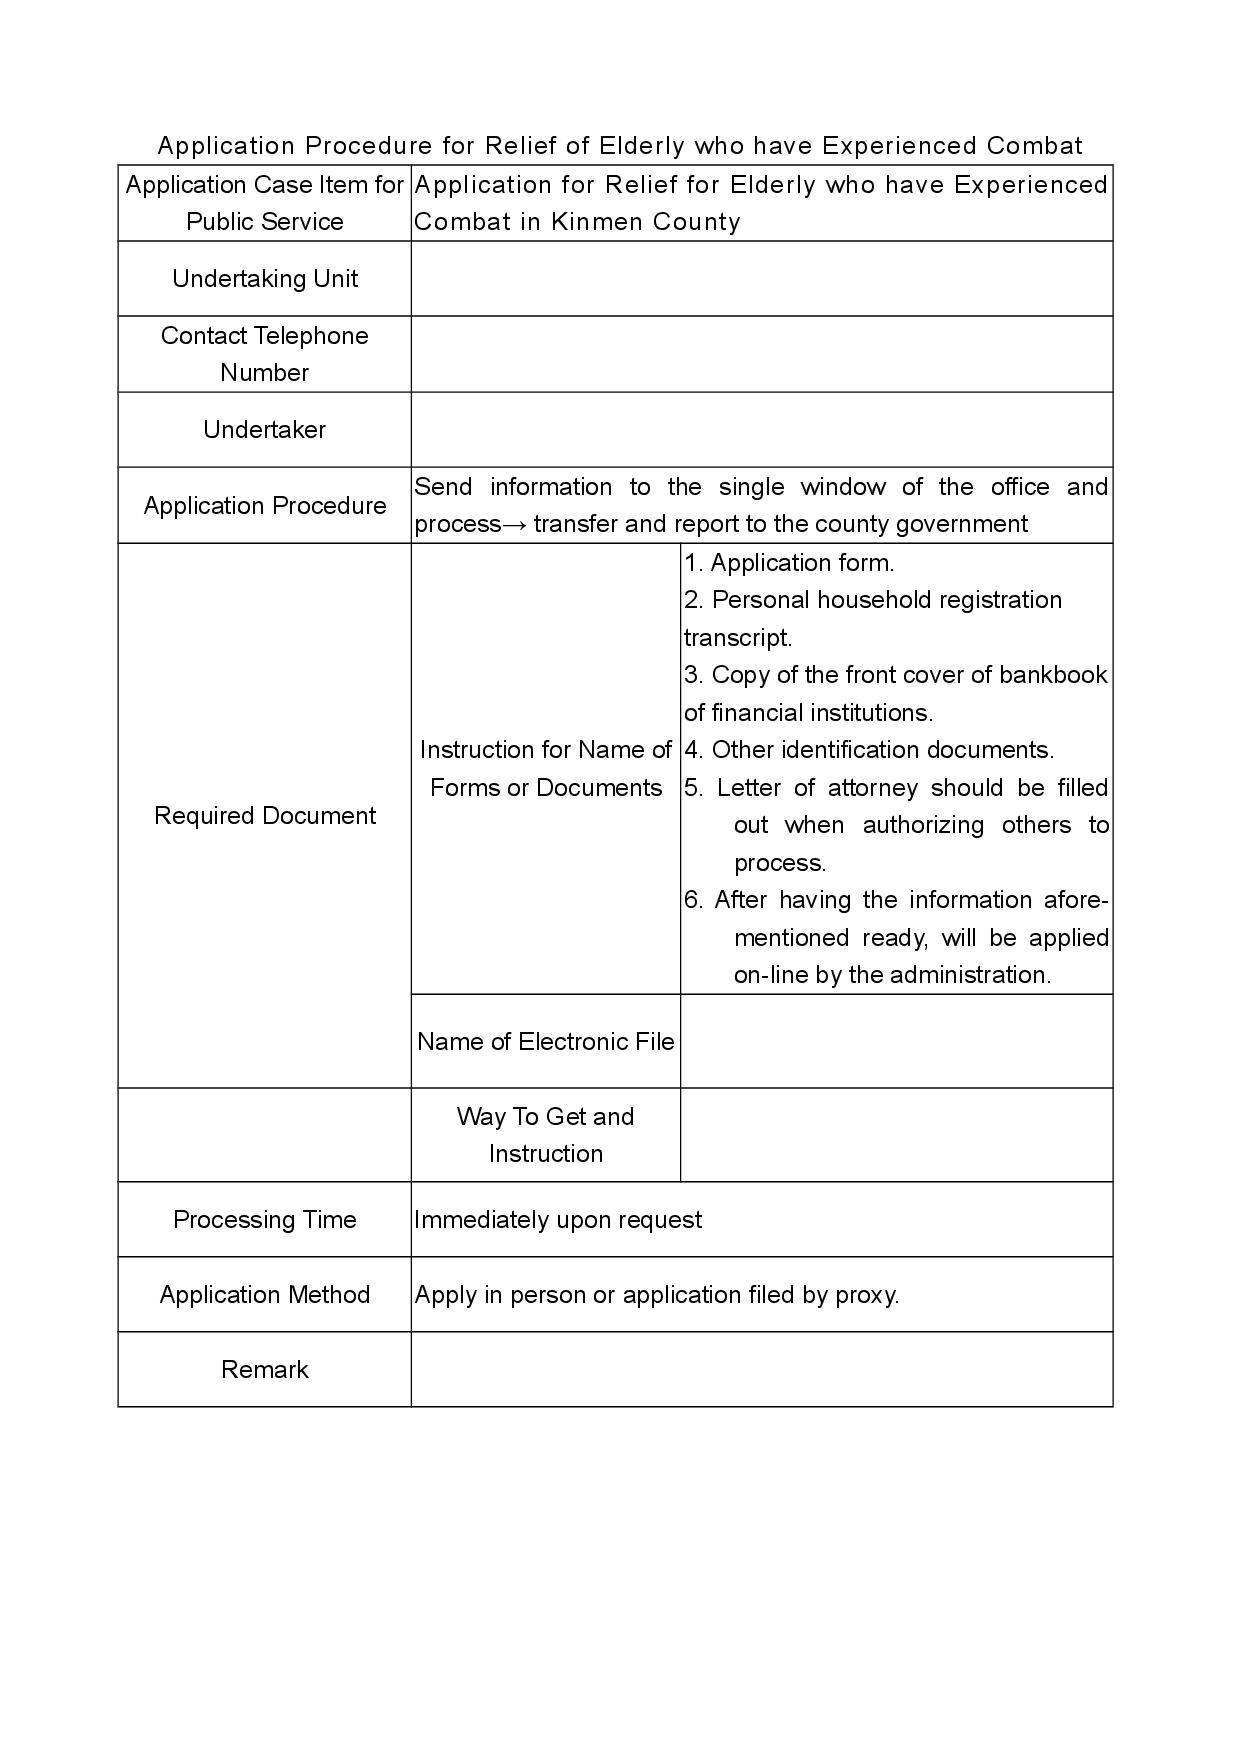 Application Procedure for Relief of Elderly who have Experienced Combat